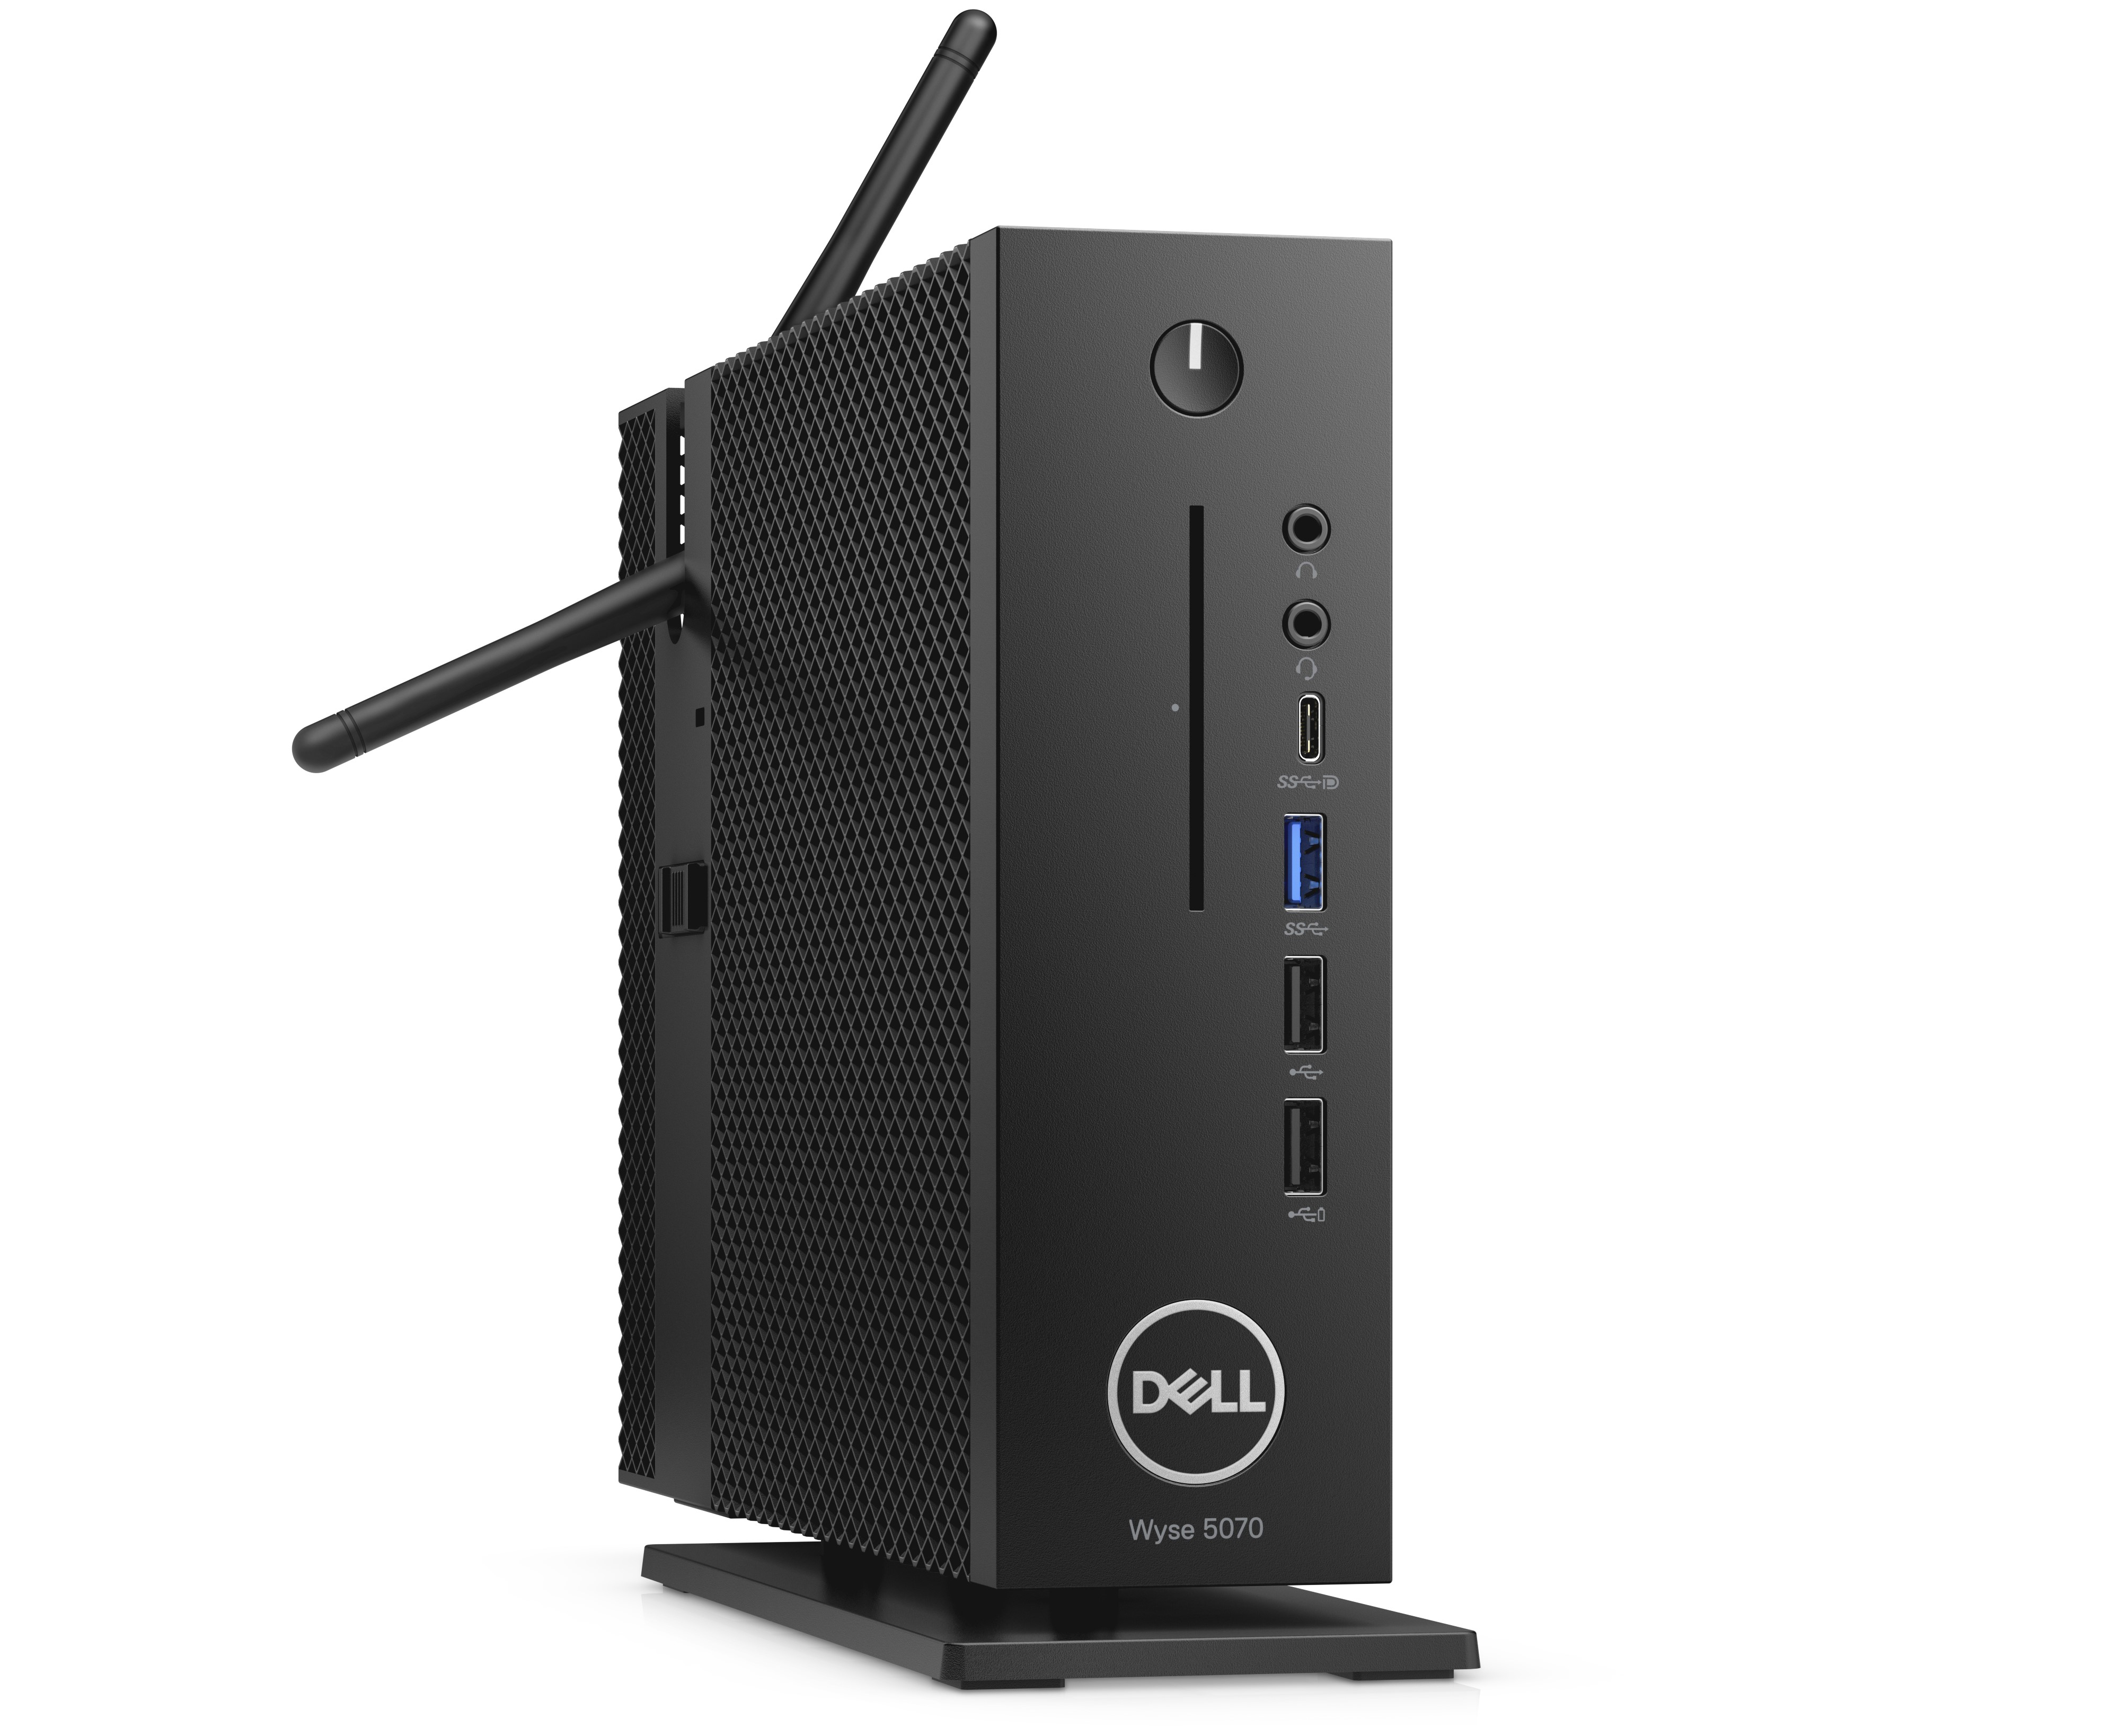 Dell introduces Wyse Thin Client 5070 small form-factor PCs